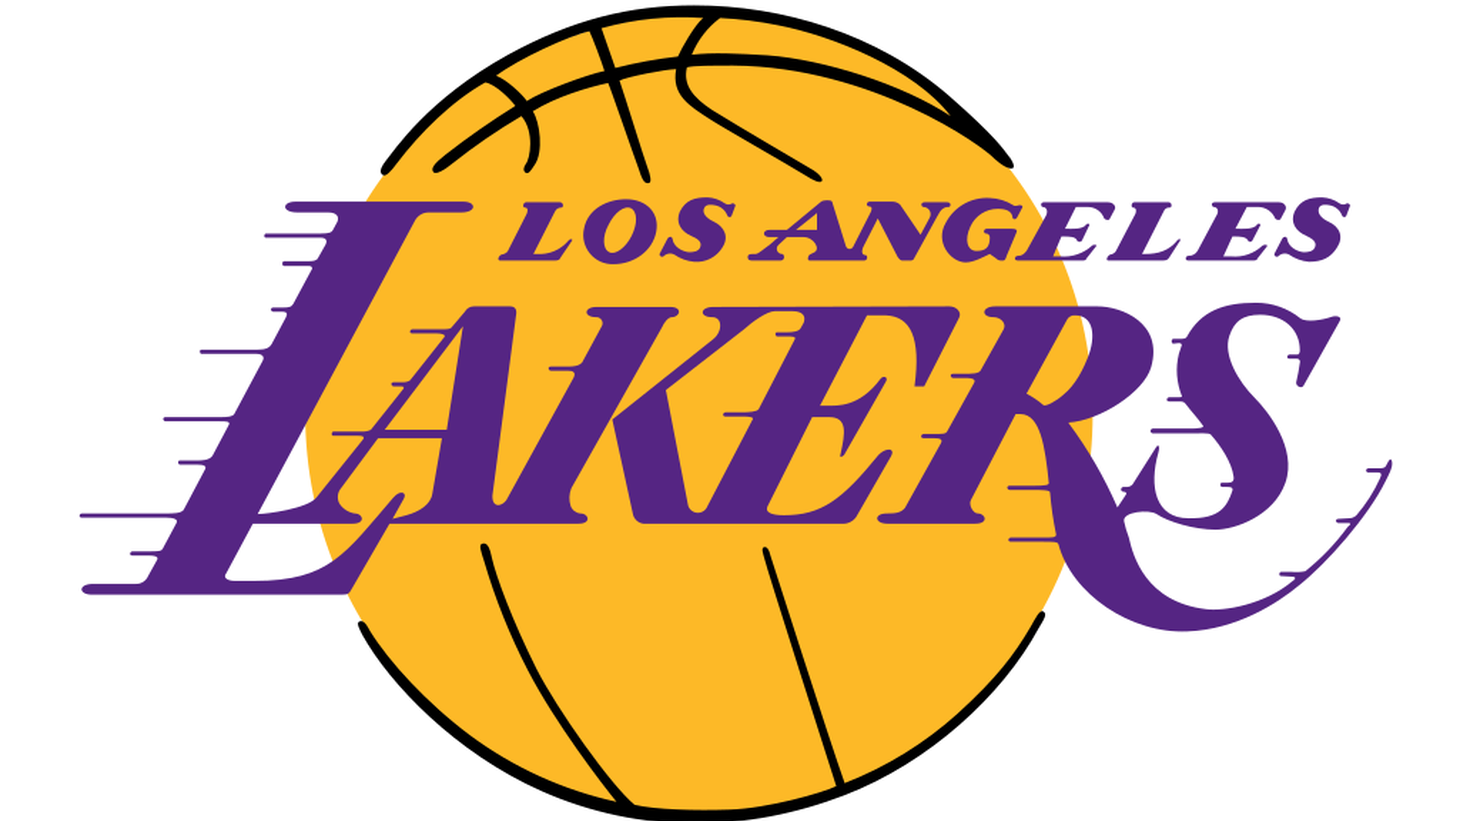 The Lakers are in the NBA Finals tonight against the Miami Heat.